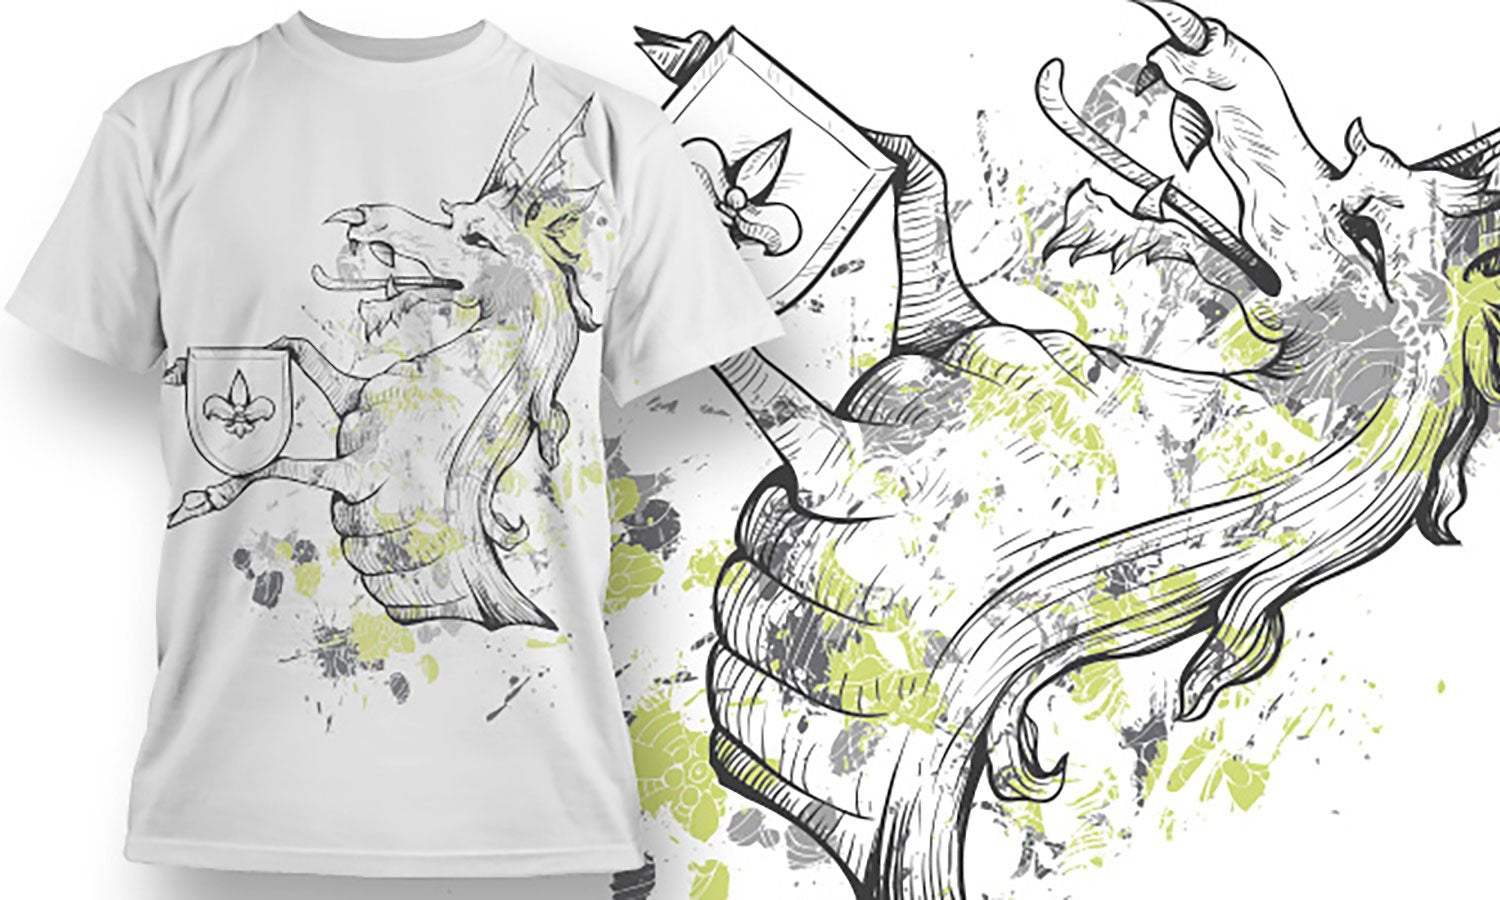 Dragon - Printed T-Shirt for Men, Women and Kids - TS088